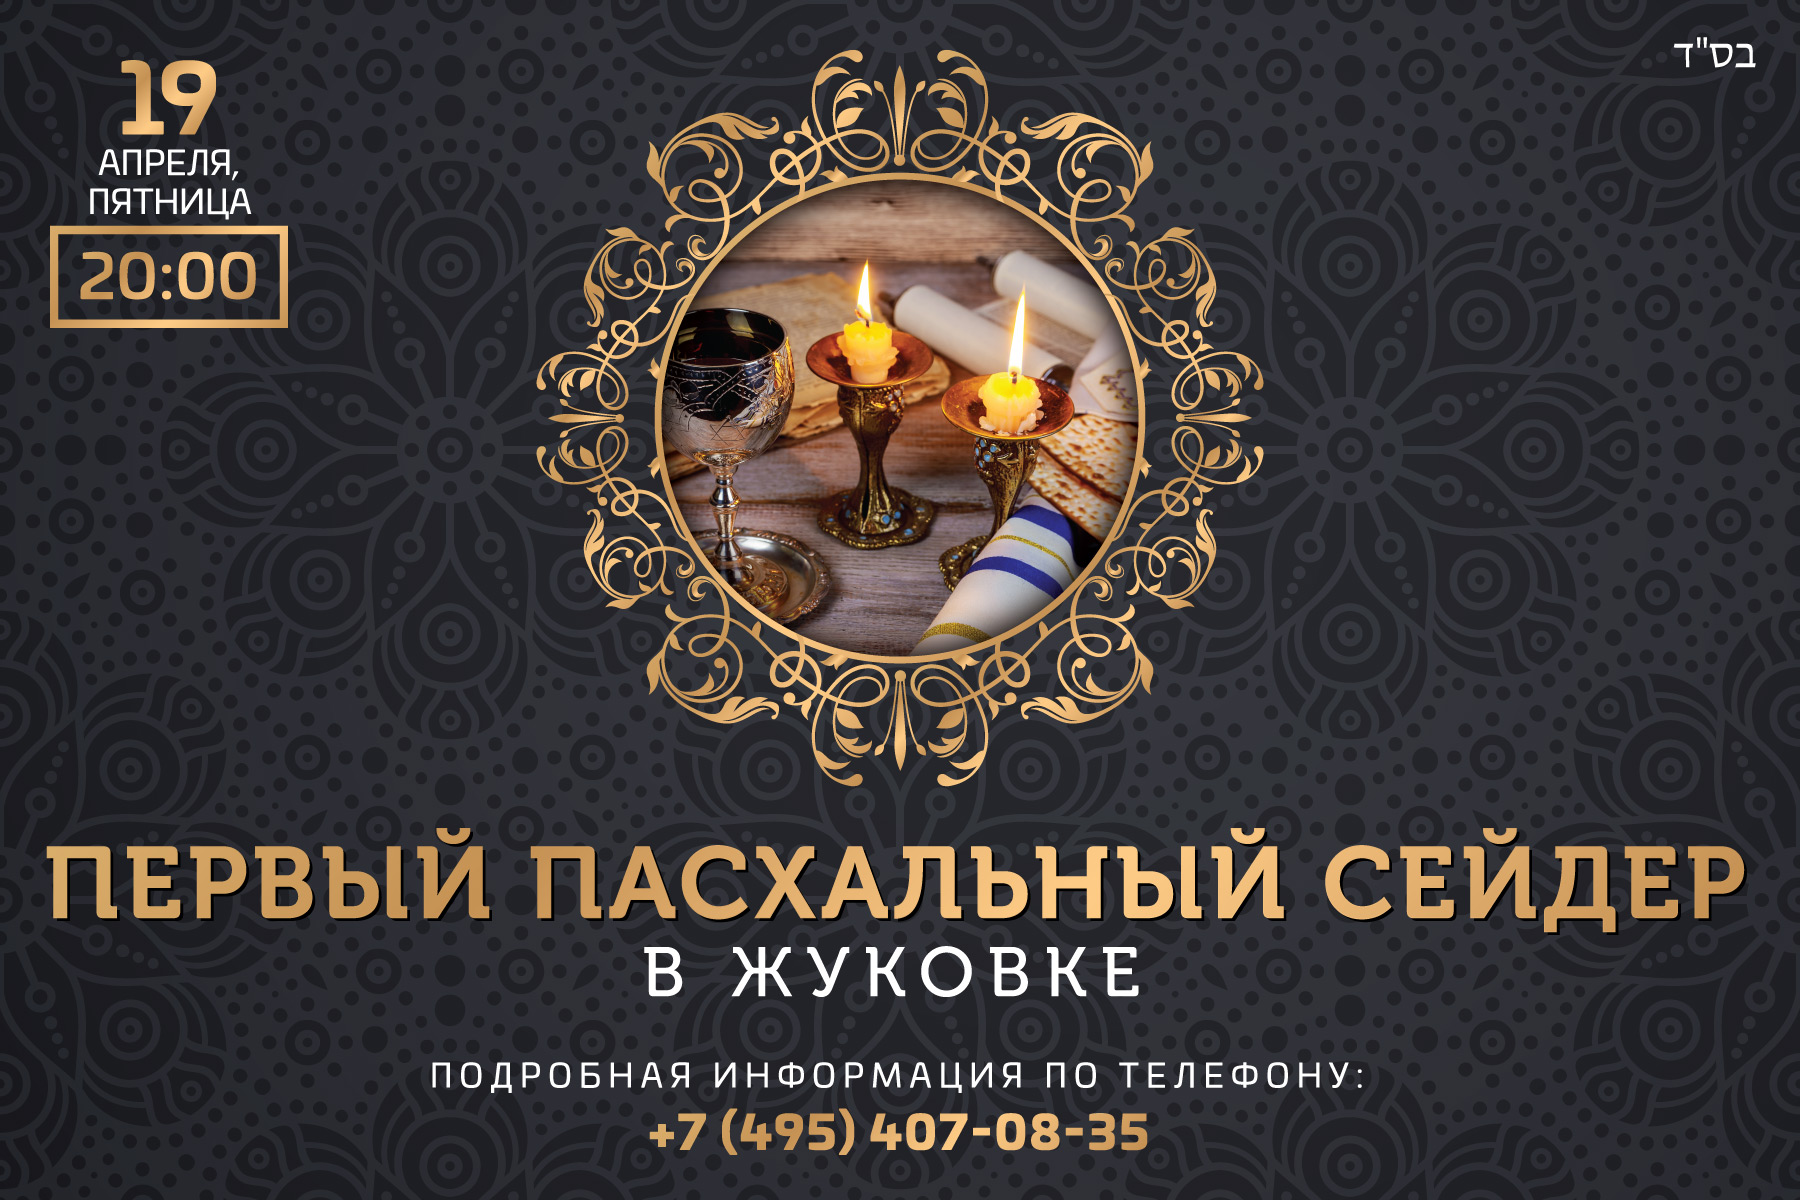 Zhuk_Pesah2019_SederInvitation_Website_Announcement